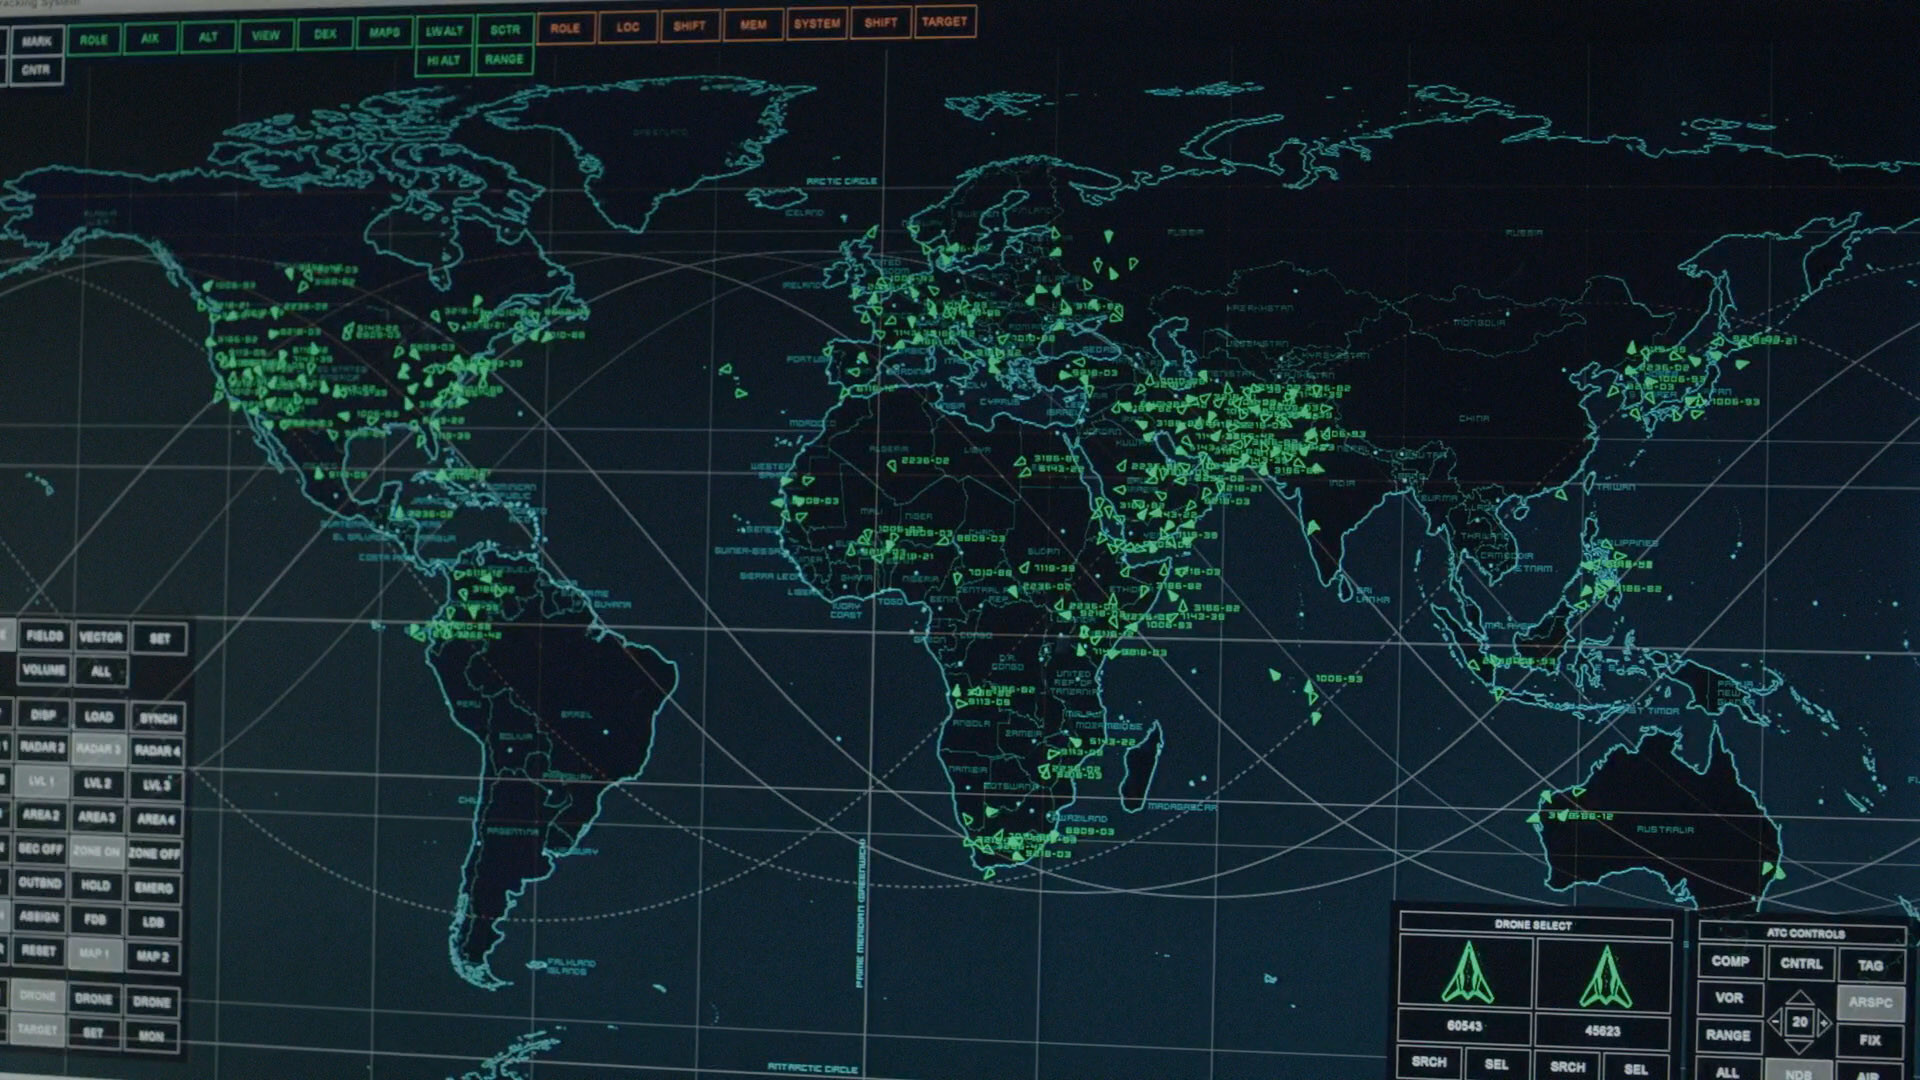 Central Intelligence Agency Wallpaper (61+ images)